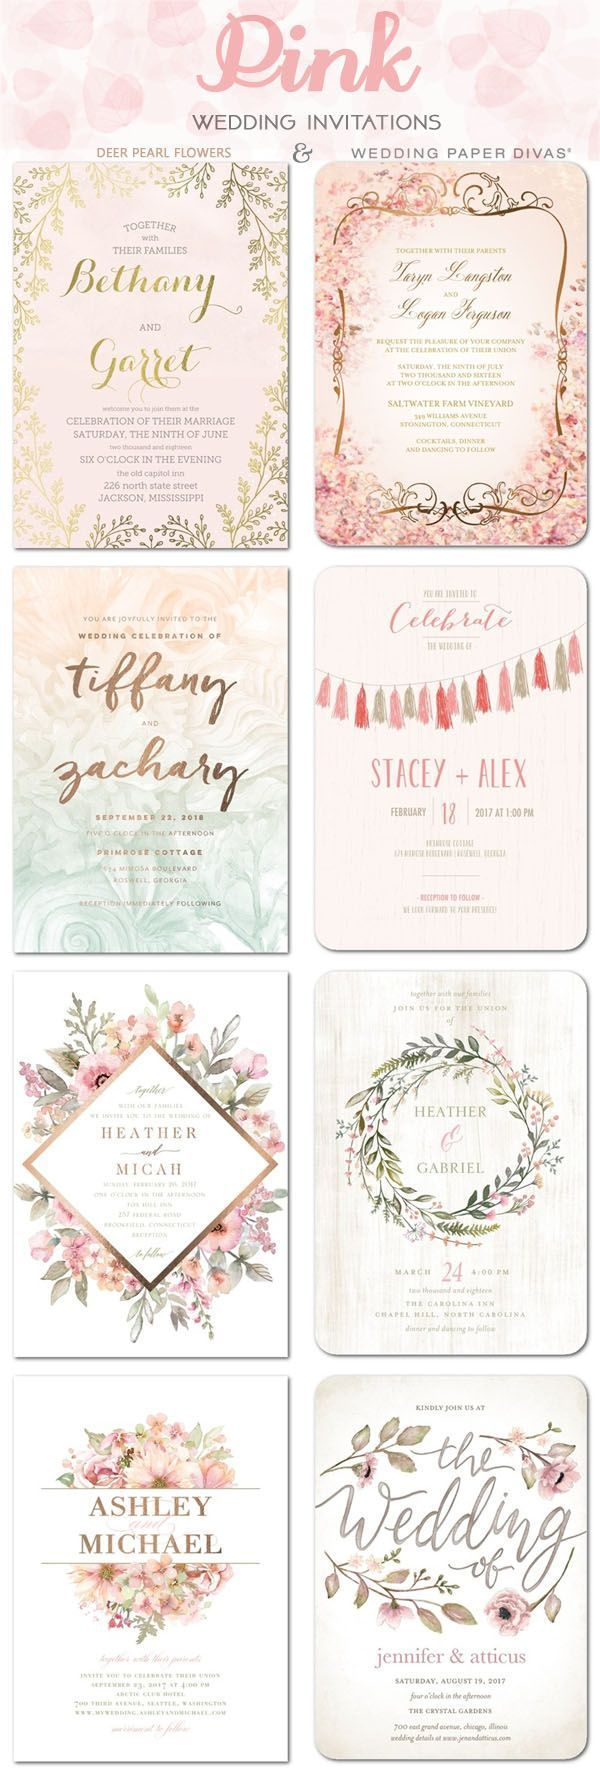 Pink wedding color ideas - Pink wedding invitations / http://www ...